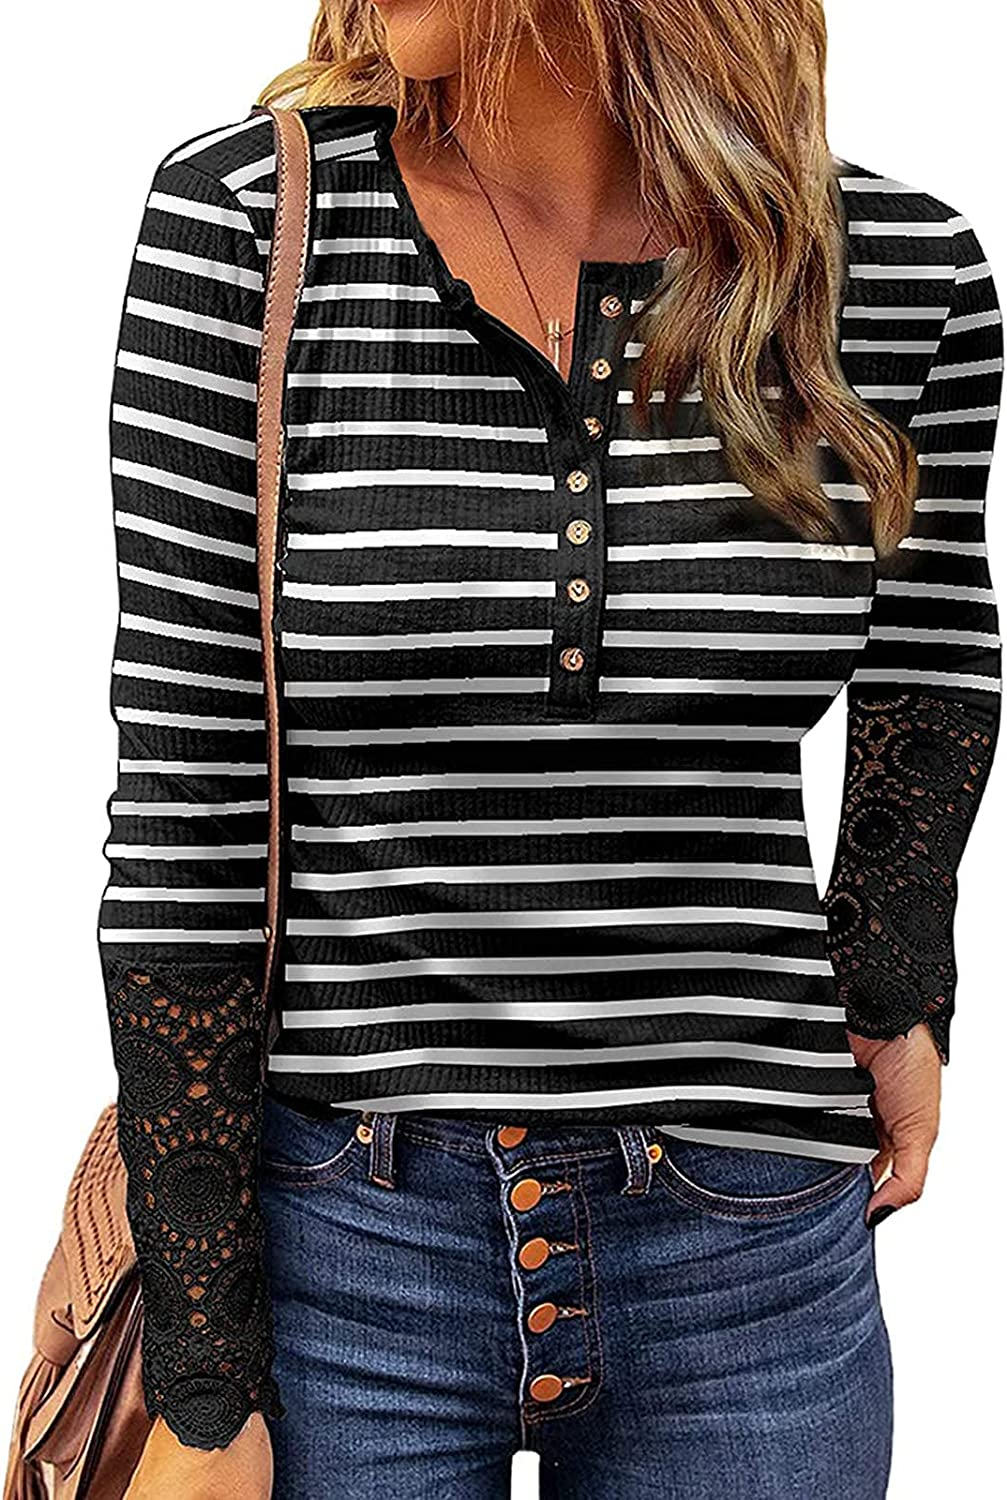 Kancystore Women's Long Sleeve Tops Lace V Neck Button Down Henley Shirts Blouses